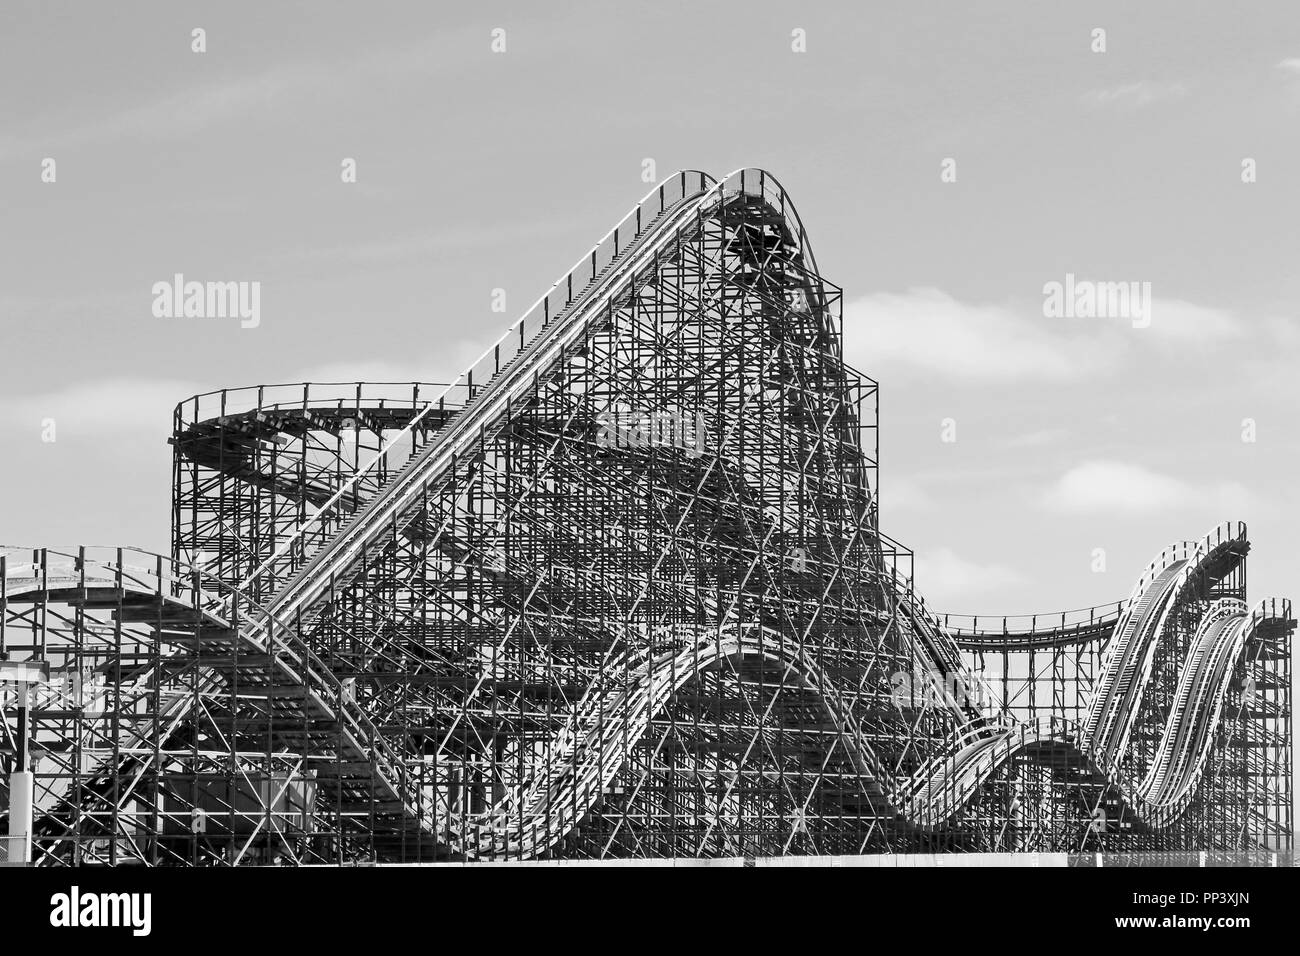 The Great White roller coaster on Morey's Piers, Wildwood, New Jersey, USA - Stock Image